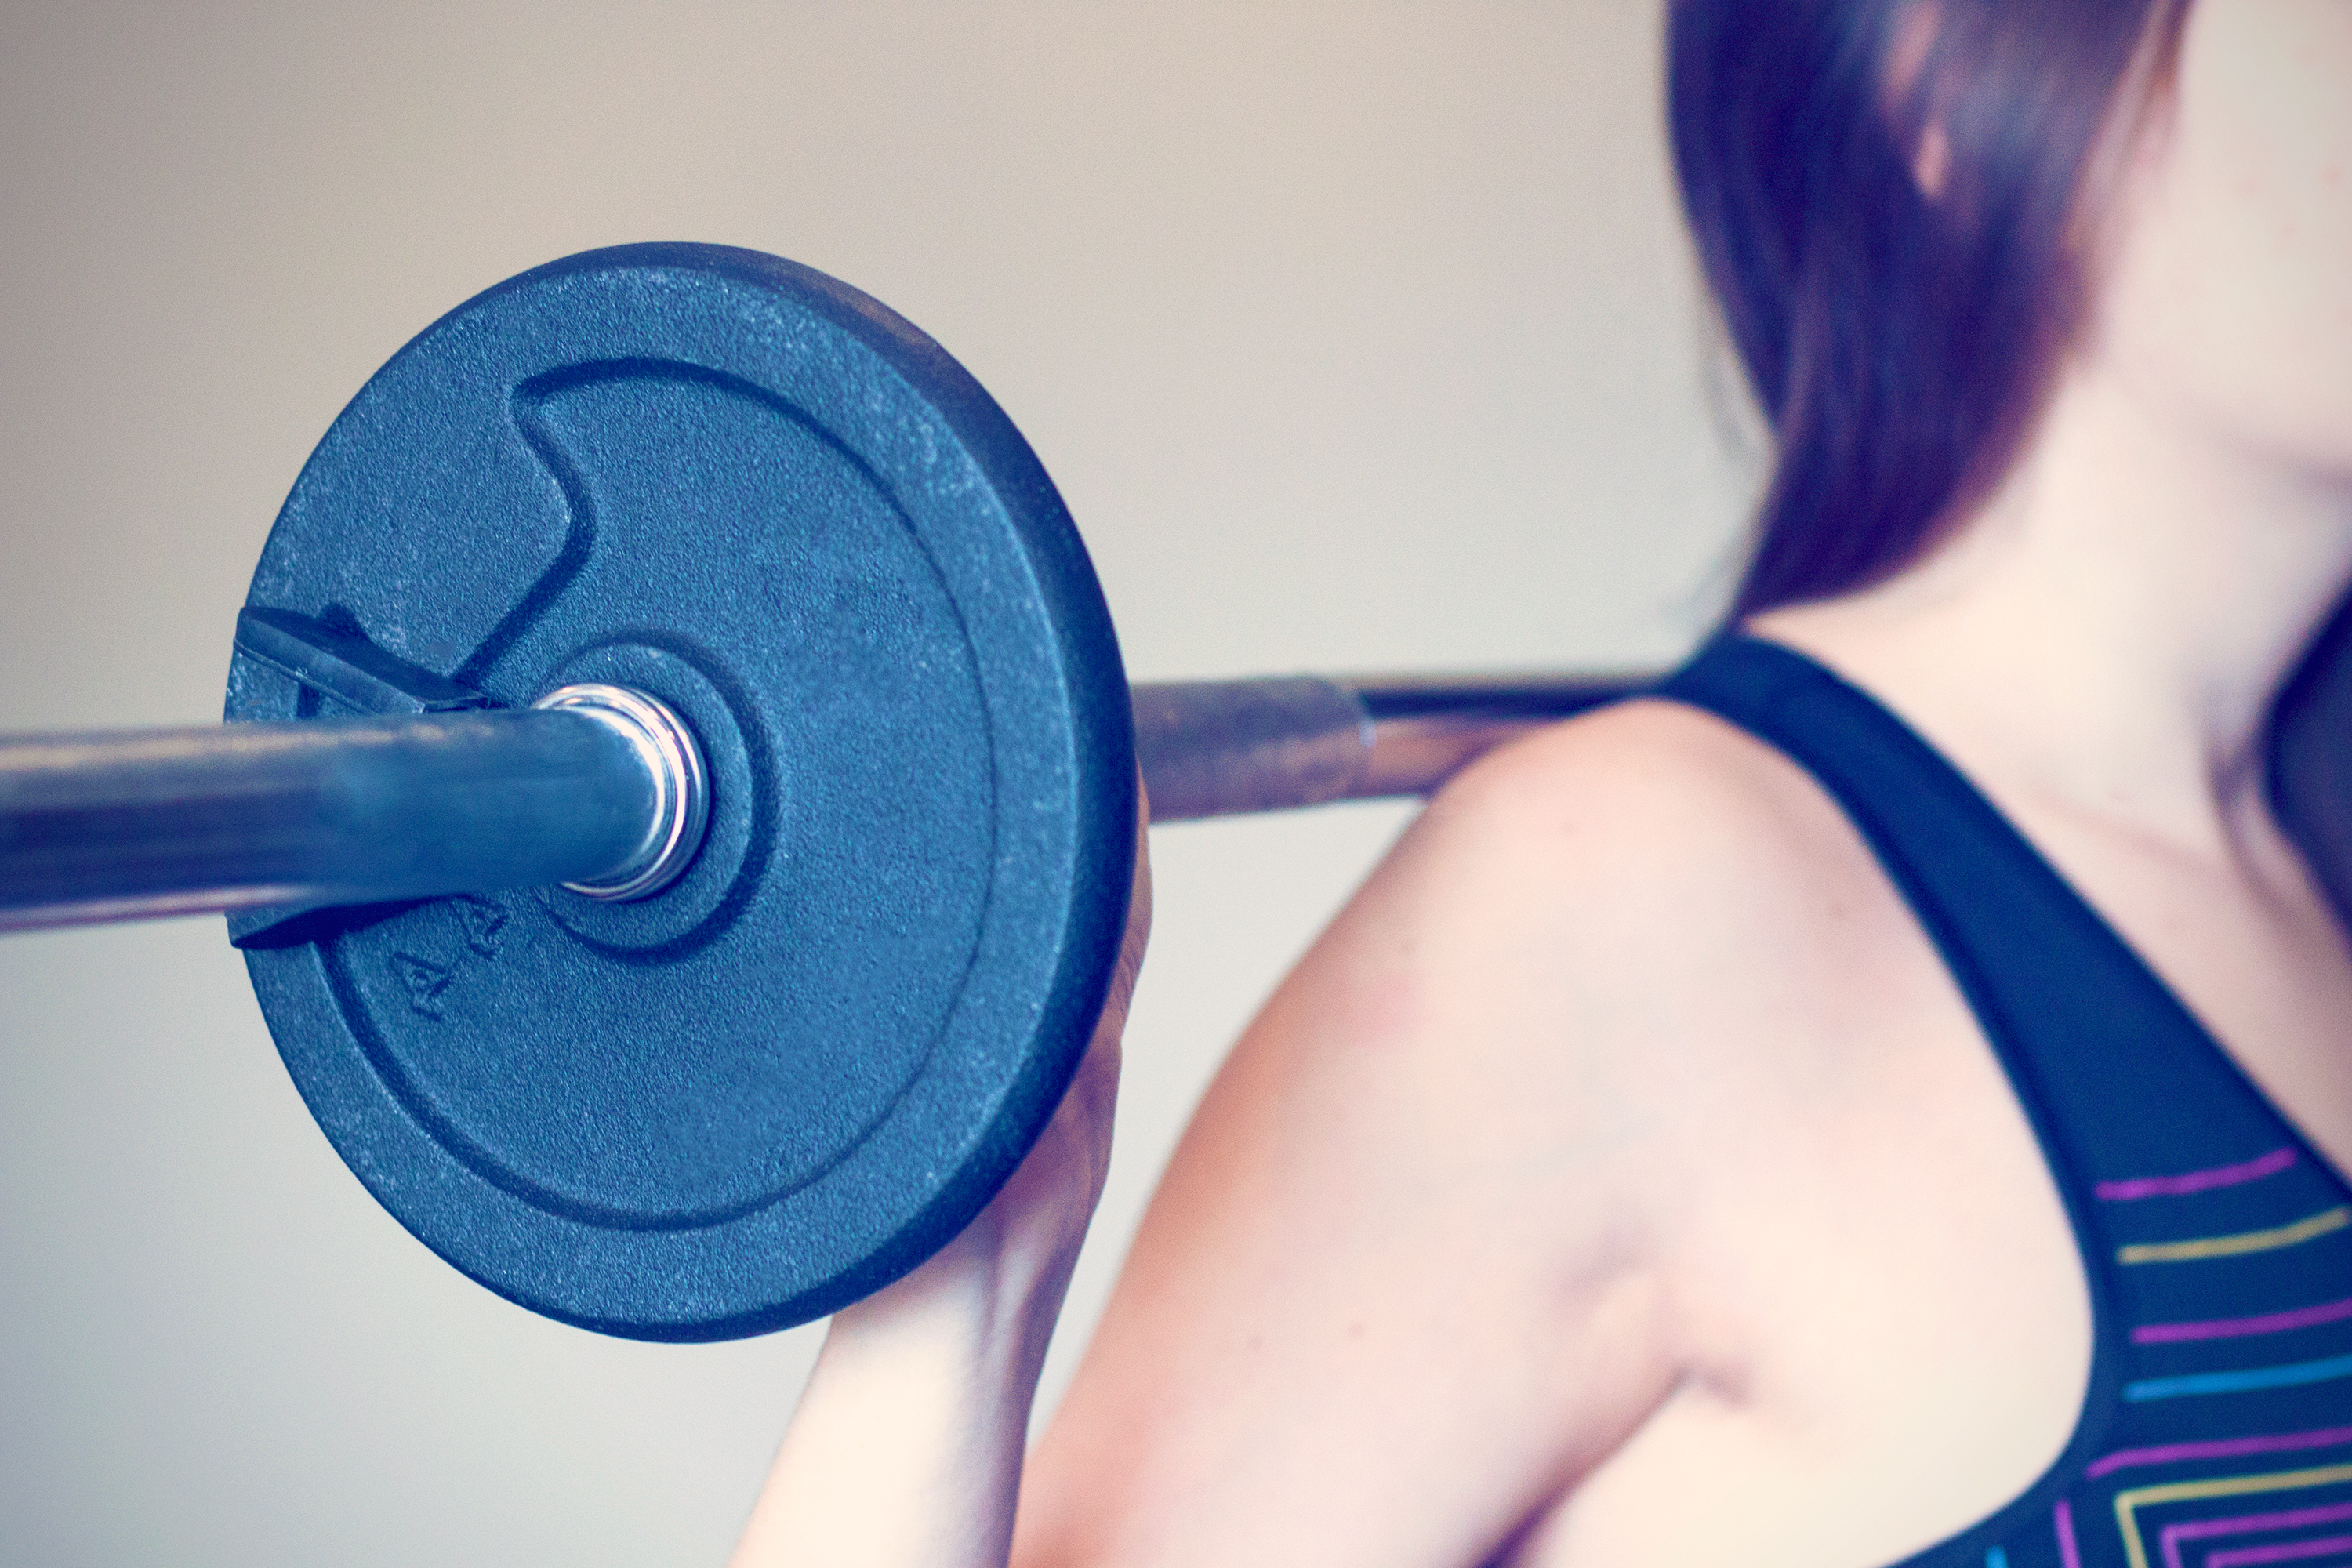 Lifting Weights After Mastectomy: Why the 4-6 Week Wait ?